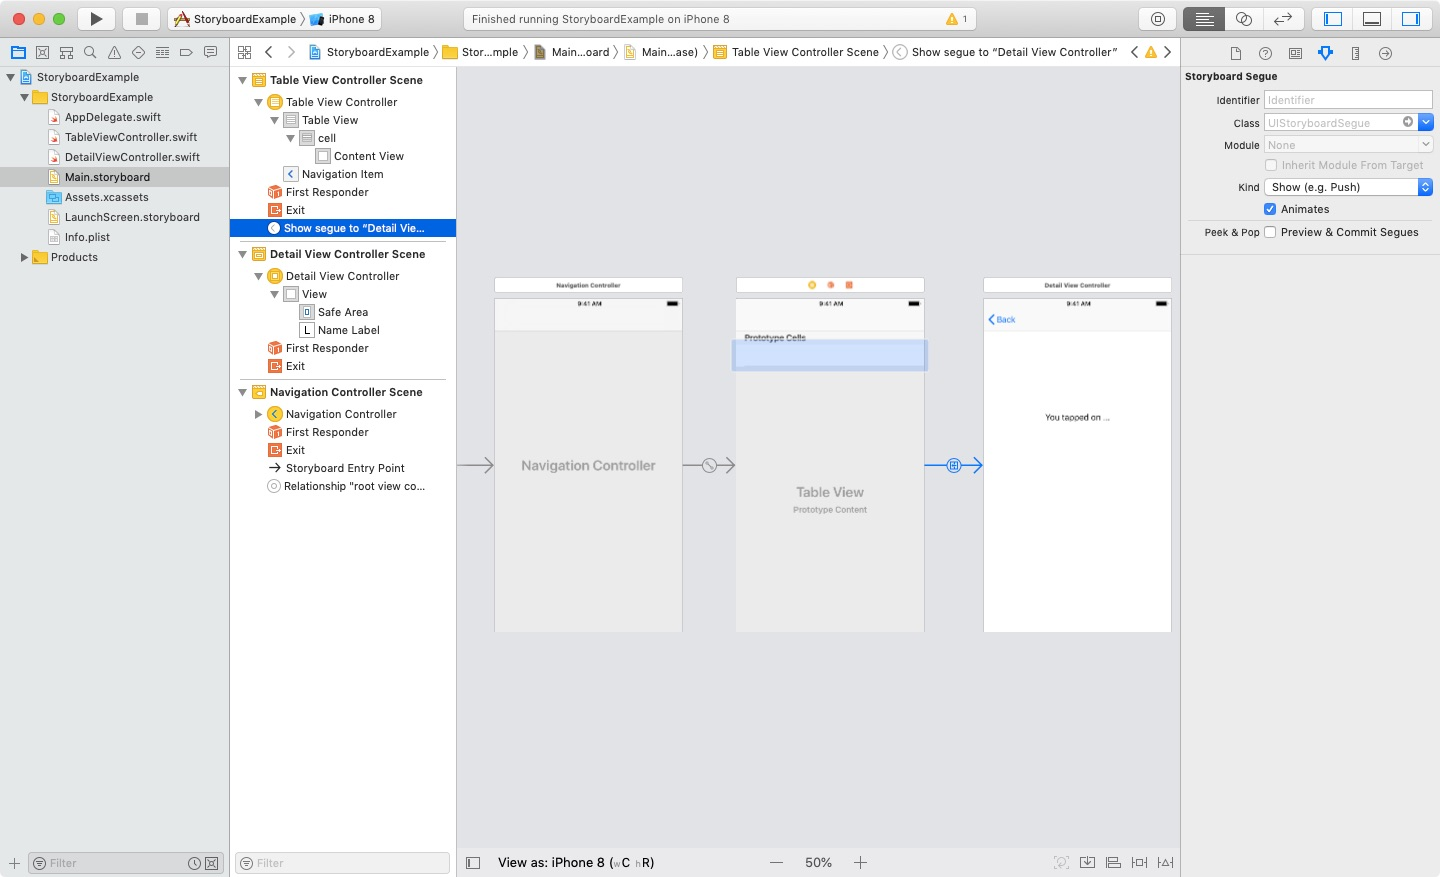 Storyboard Segue with View Controllers